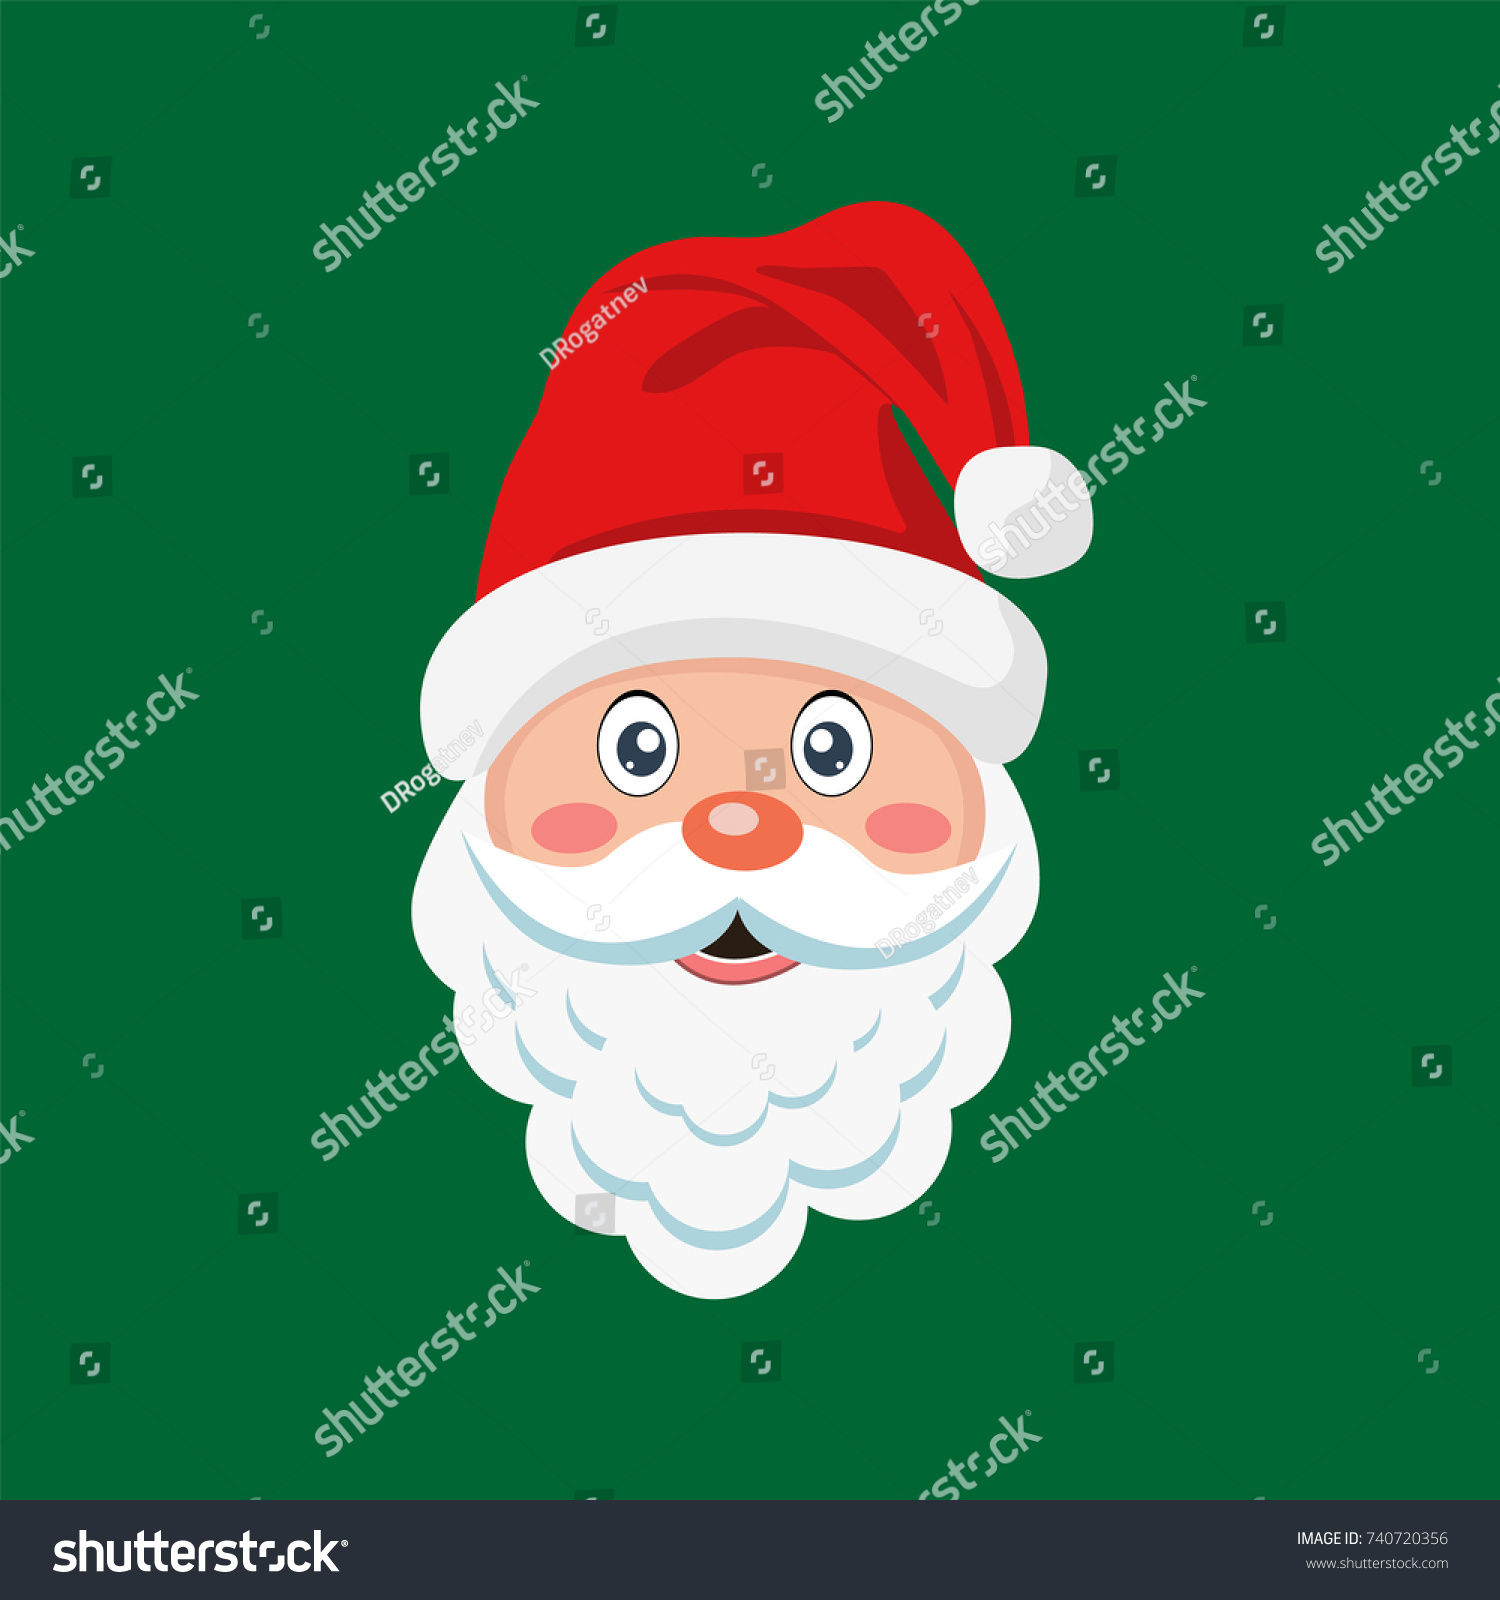 Santa Claus icon. Christmas card template. Colorful illustration ...